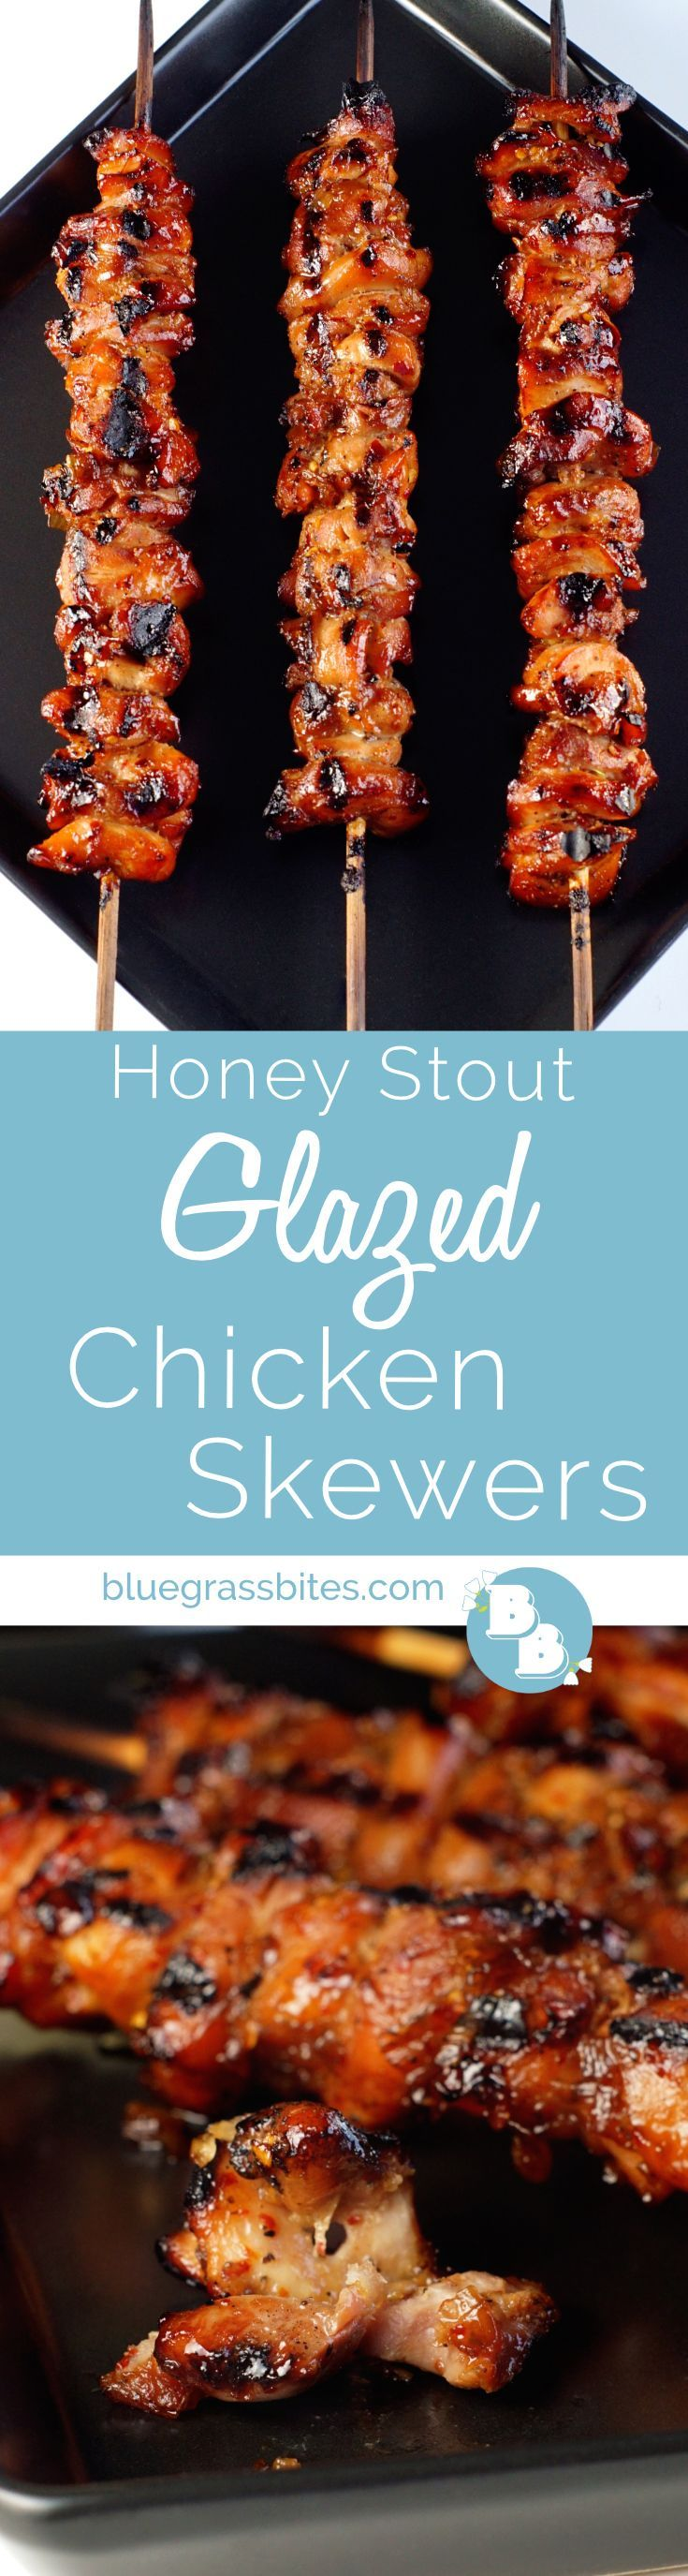 Grilled #chicken skewers made with chicken thighs covered in a sticky, sweet, and tangy #beer-spiked glaze.